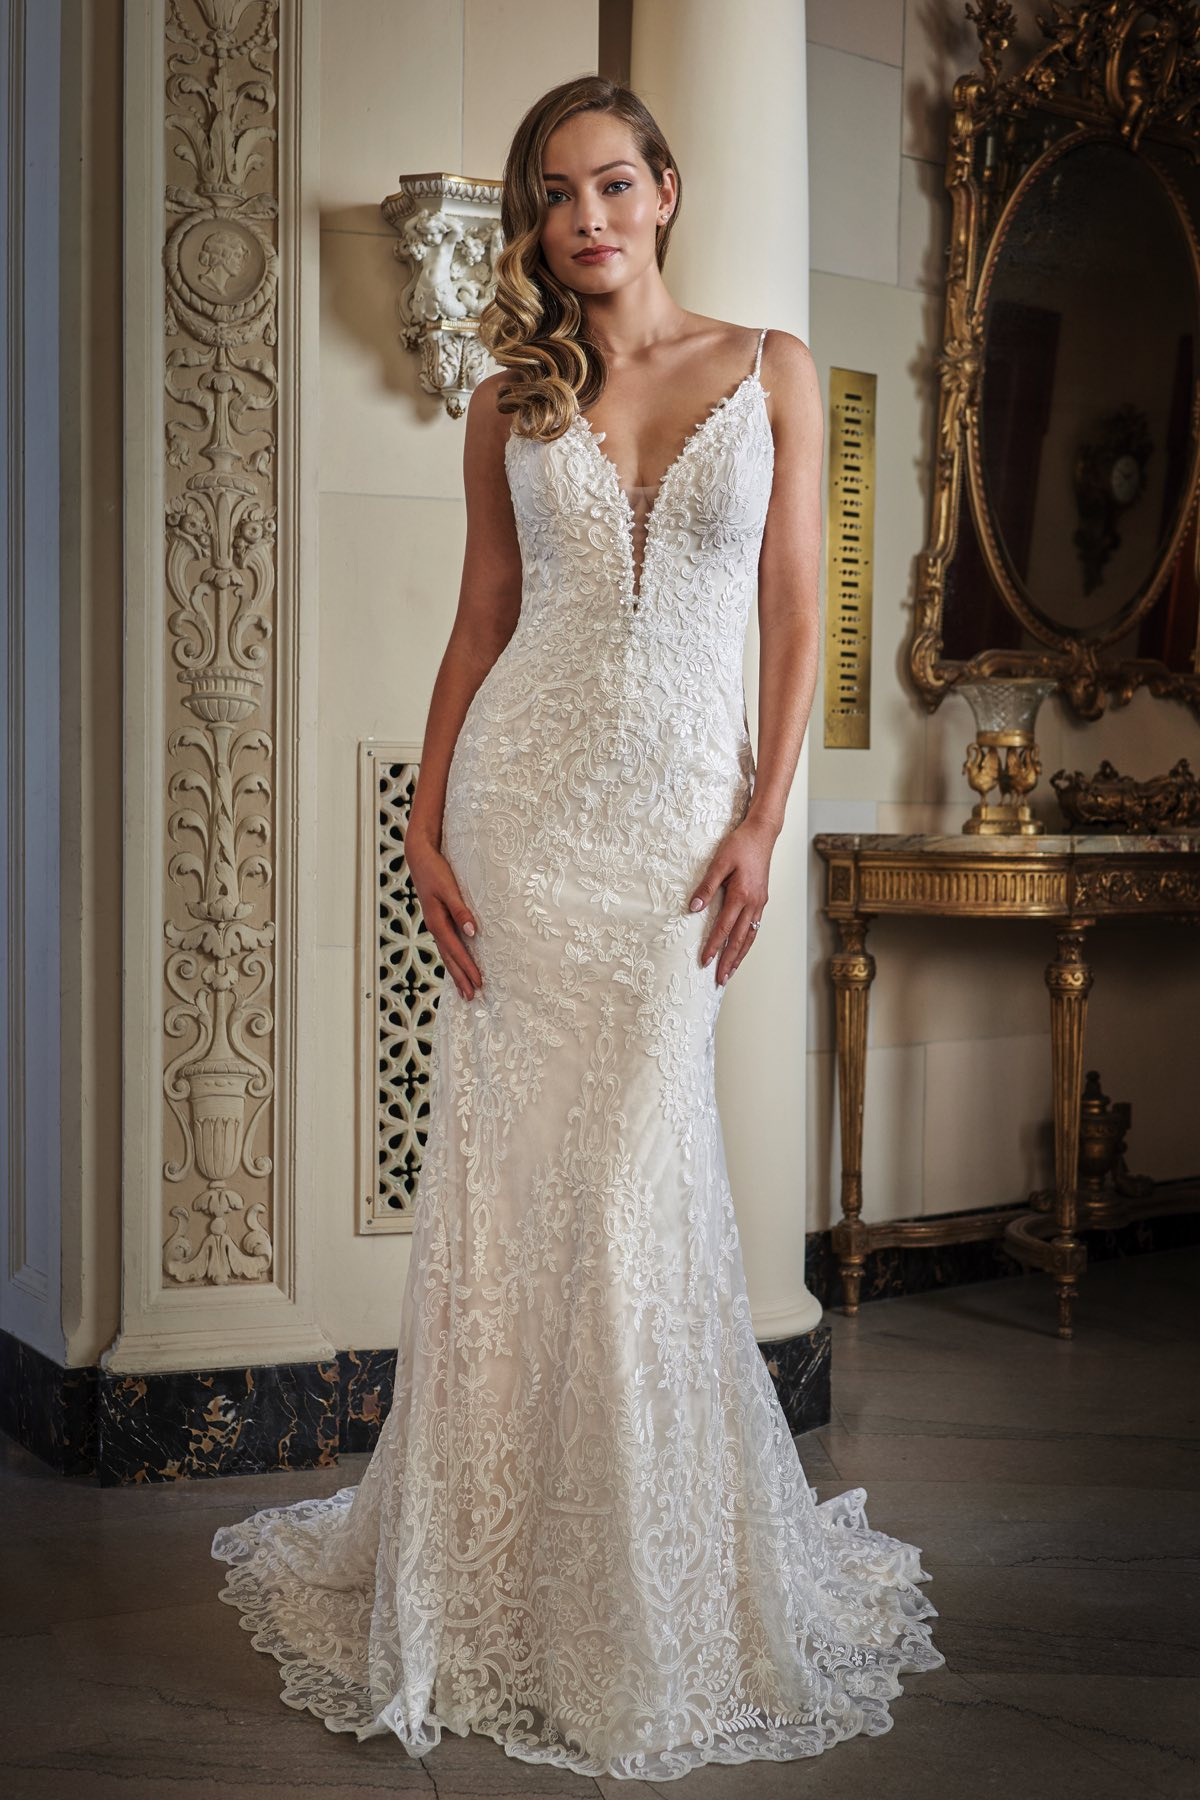 T222007 Embroidery Lace Applique Fit And Flare Sweetheart Wedding Dress